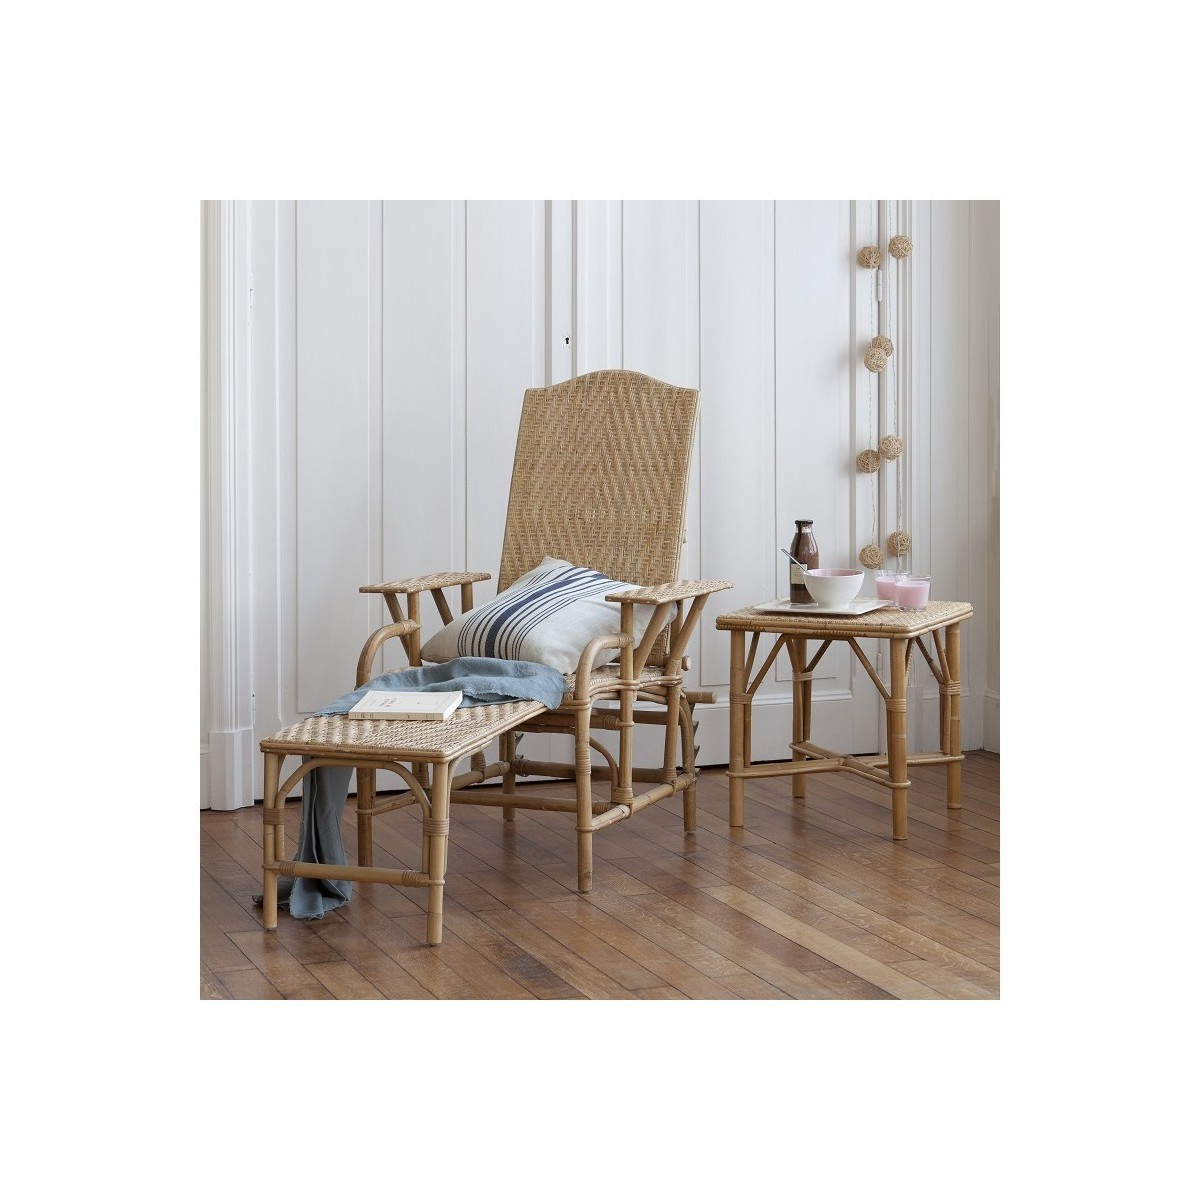 Chaise longue en rotin naturel - Chaise longue de salon ...